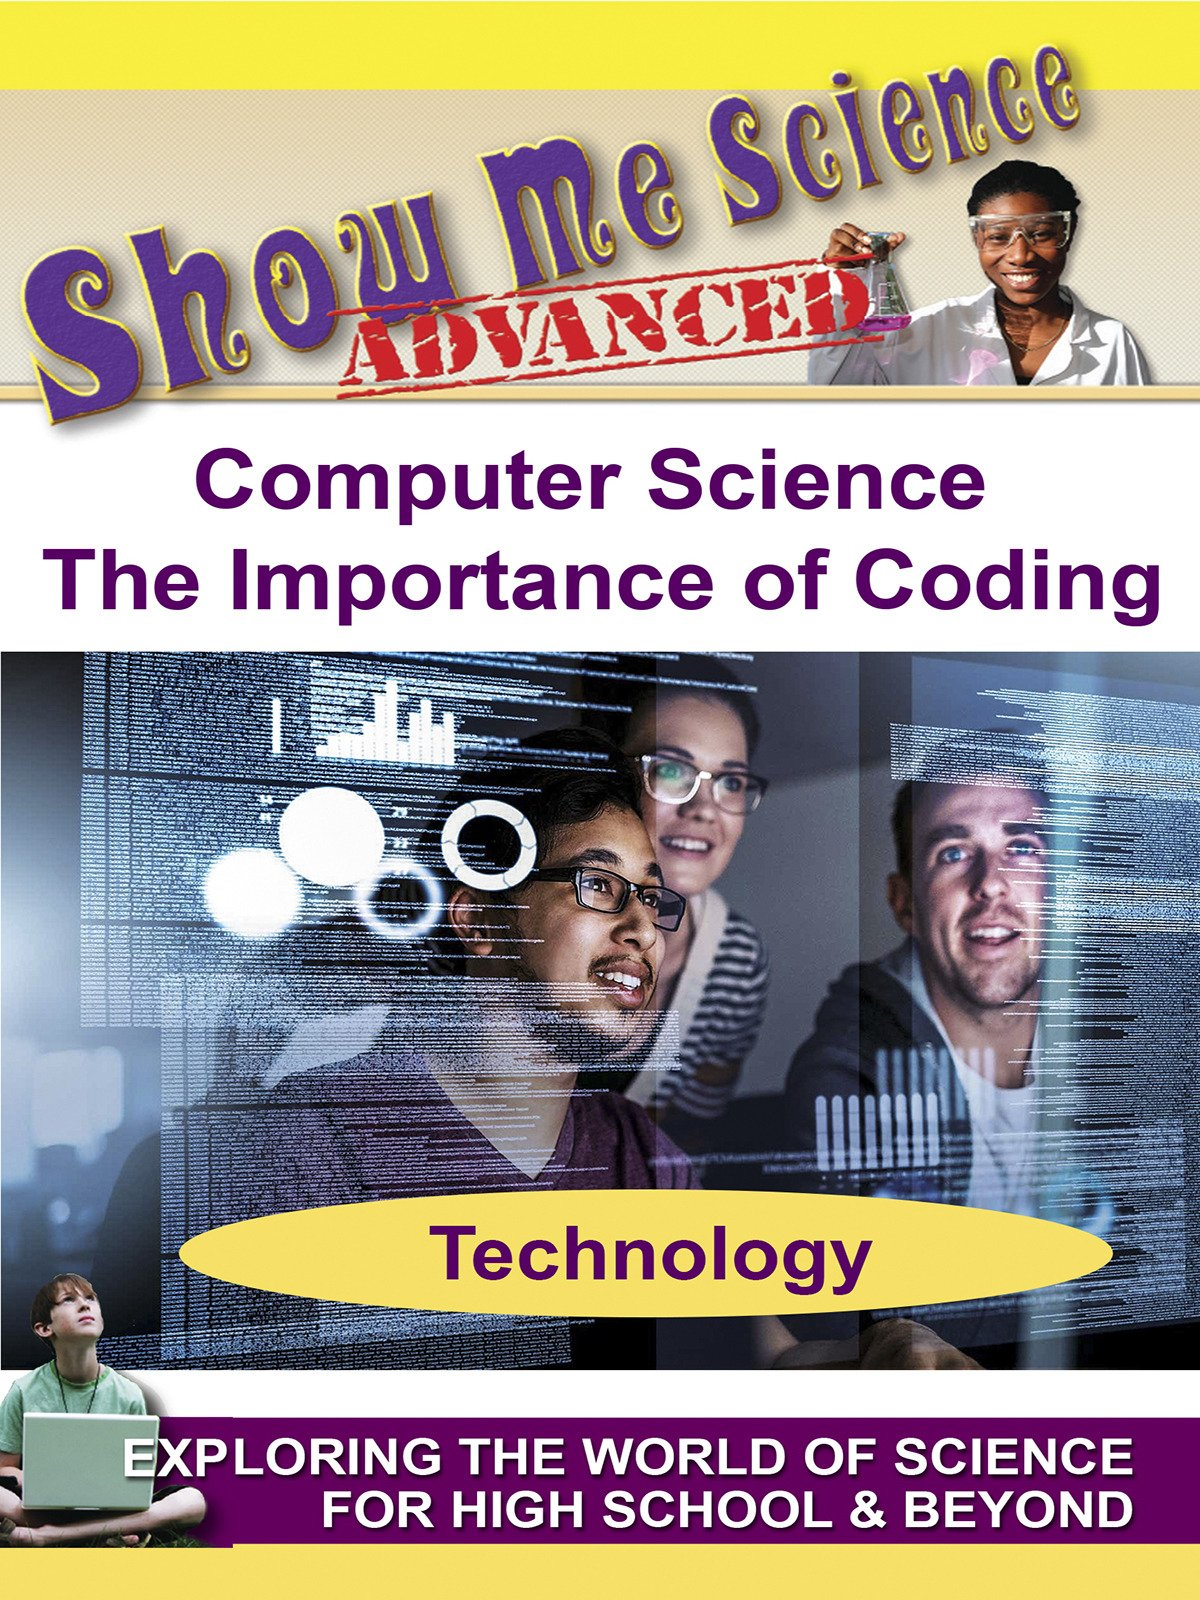 Computer Science - The Importance of Coding